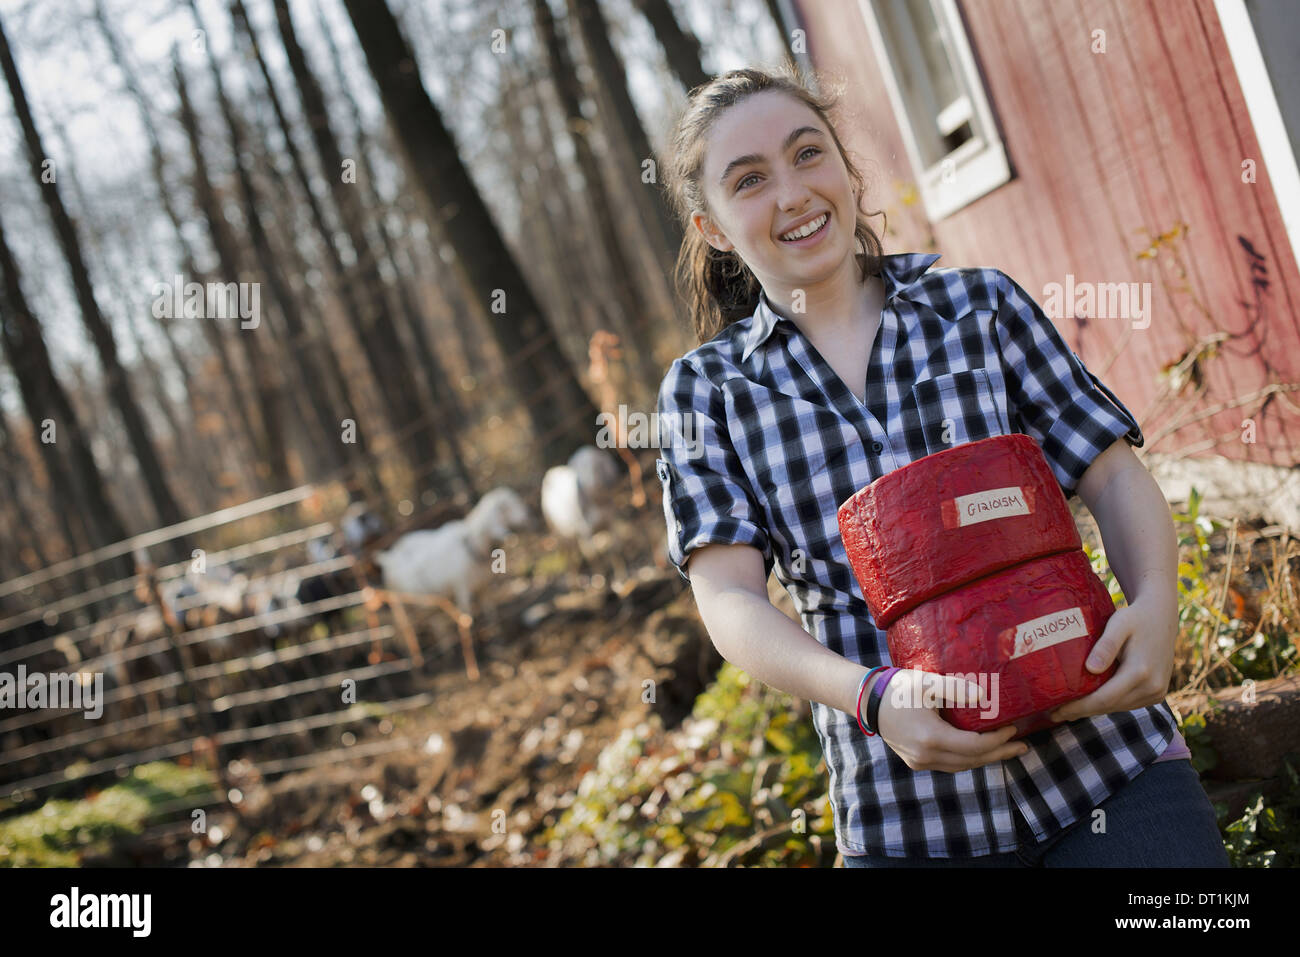 A young woman standing outside a dairy farm building holding two blocks of cheese - Stock Image